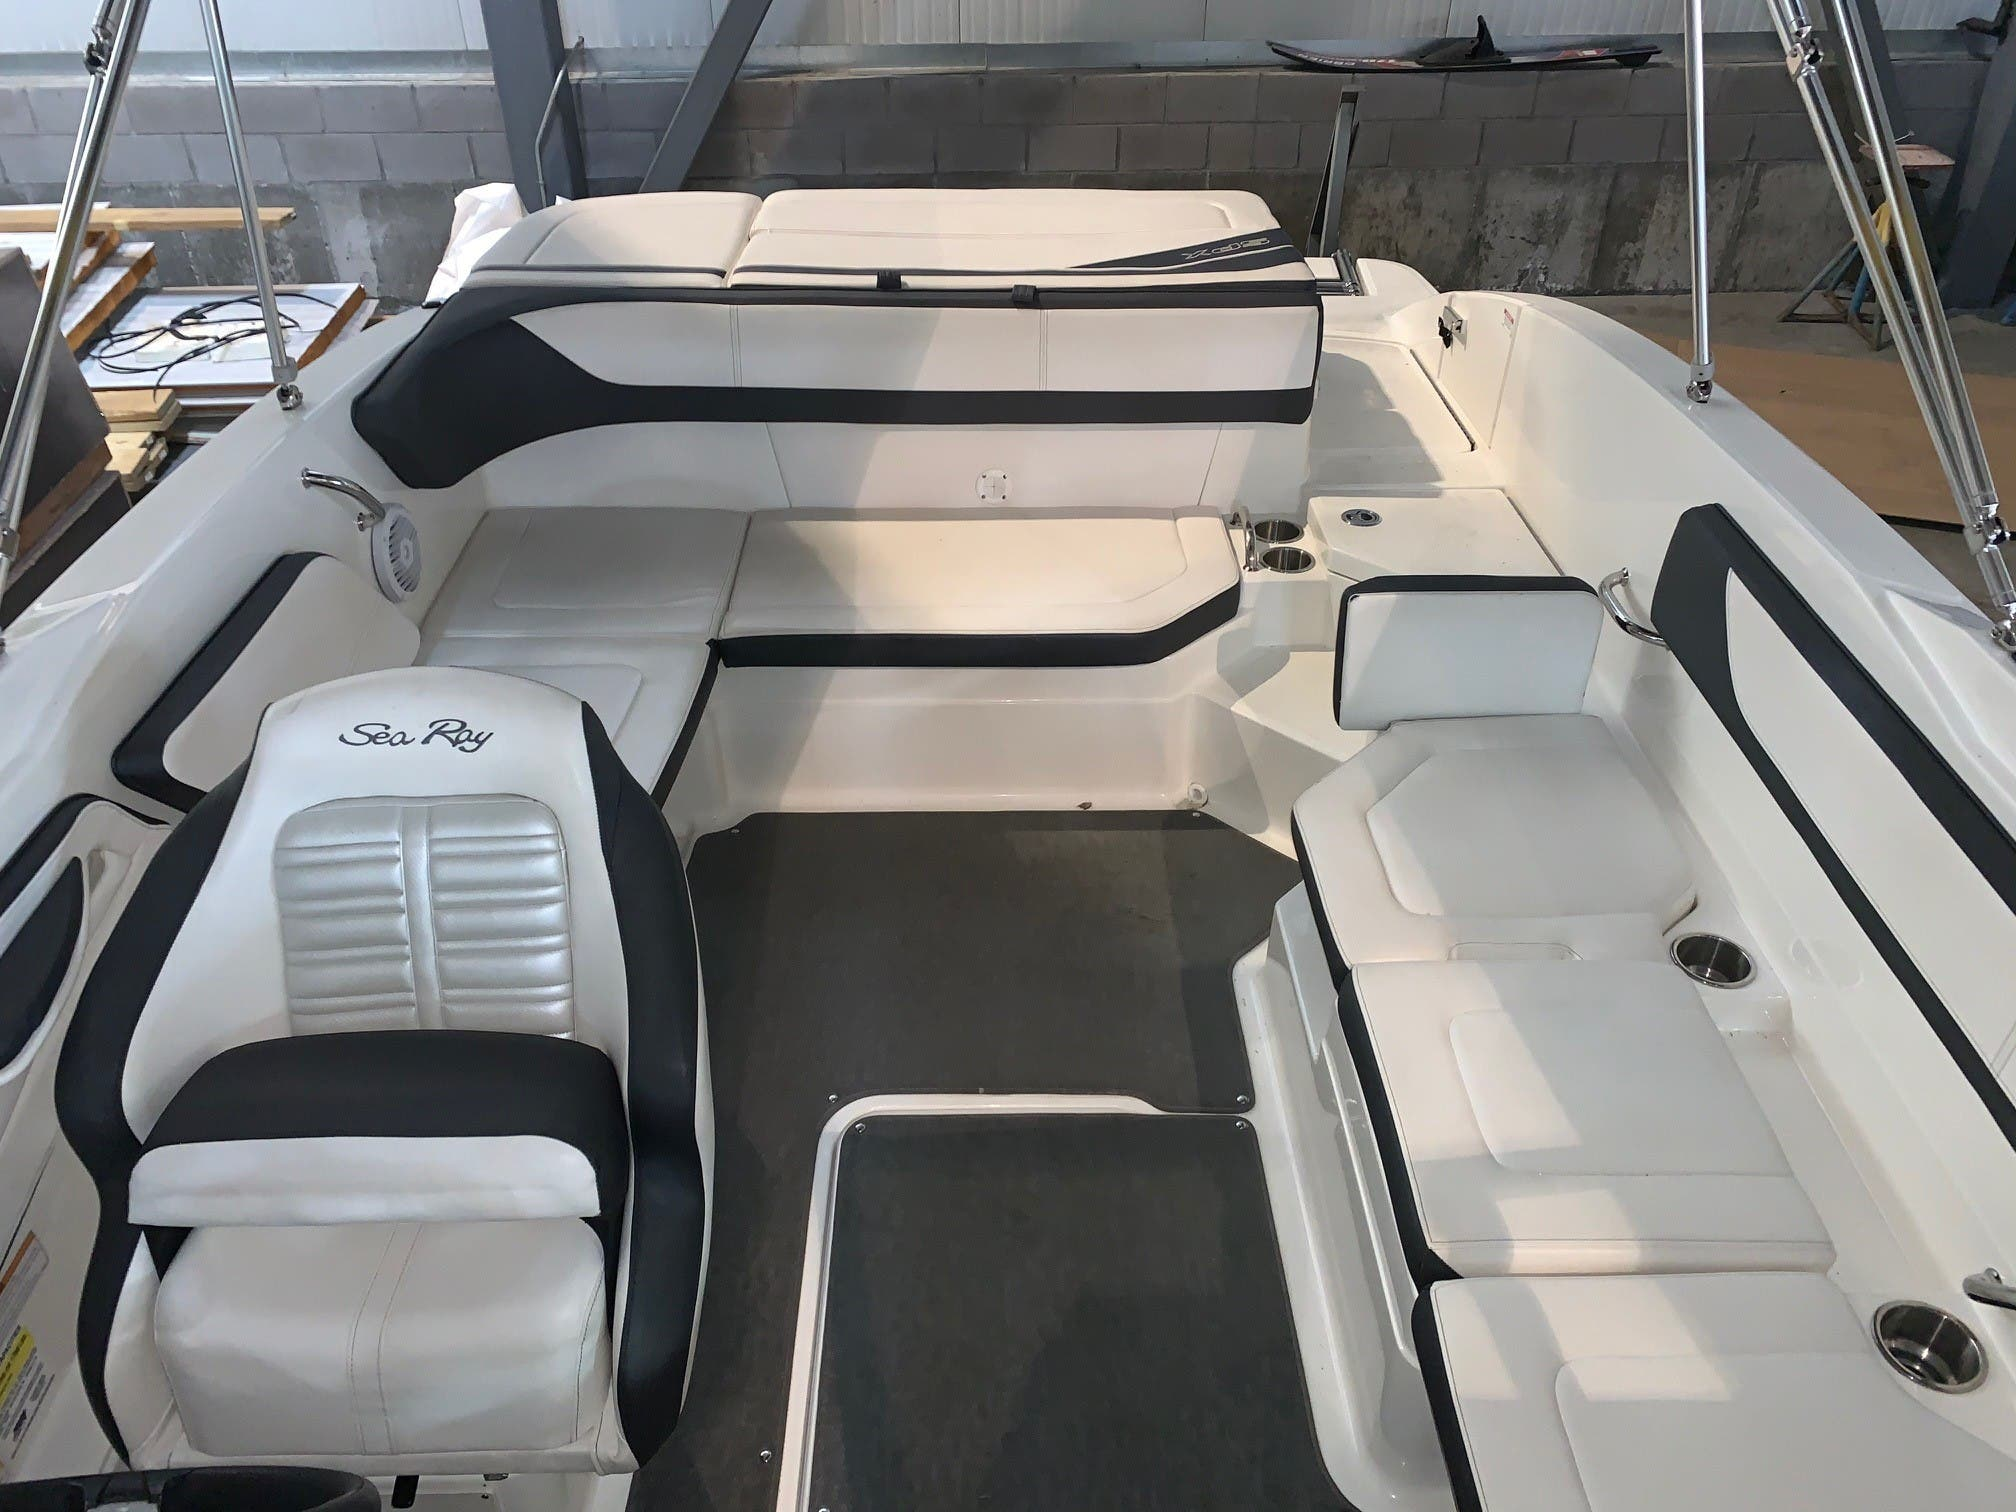 2016 Sea Ray boat for sale, model of the boat is 210spx & Image # 4 of 8